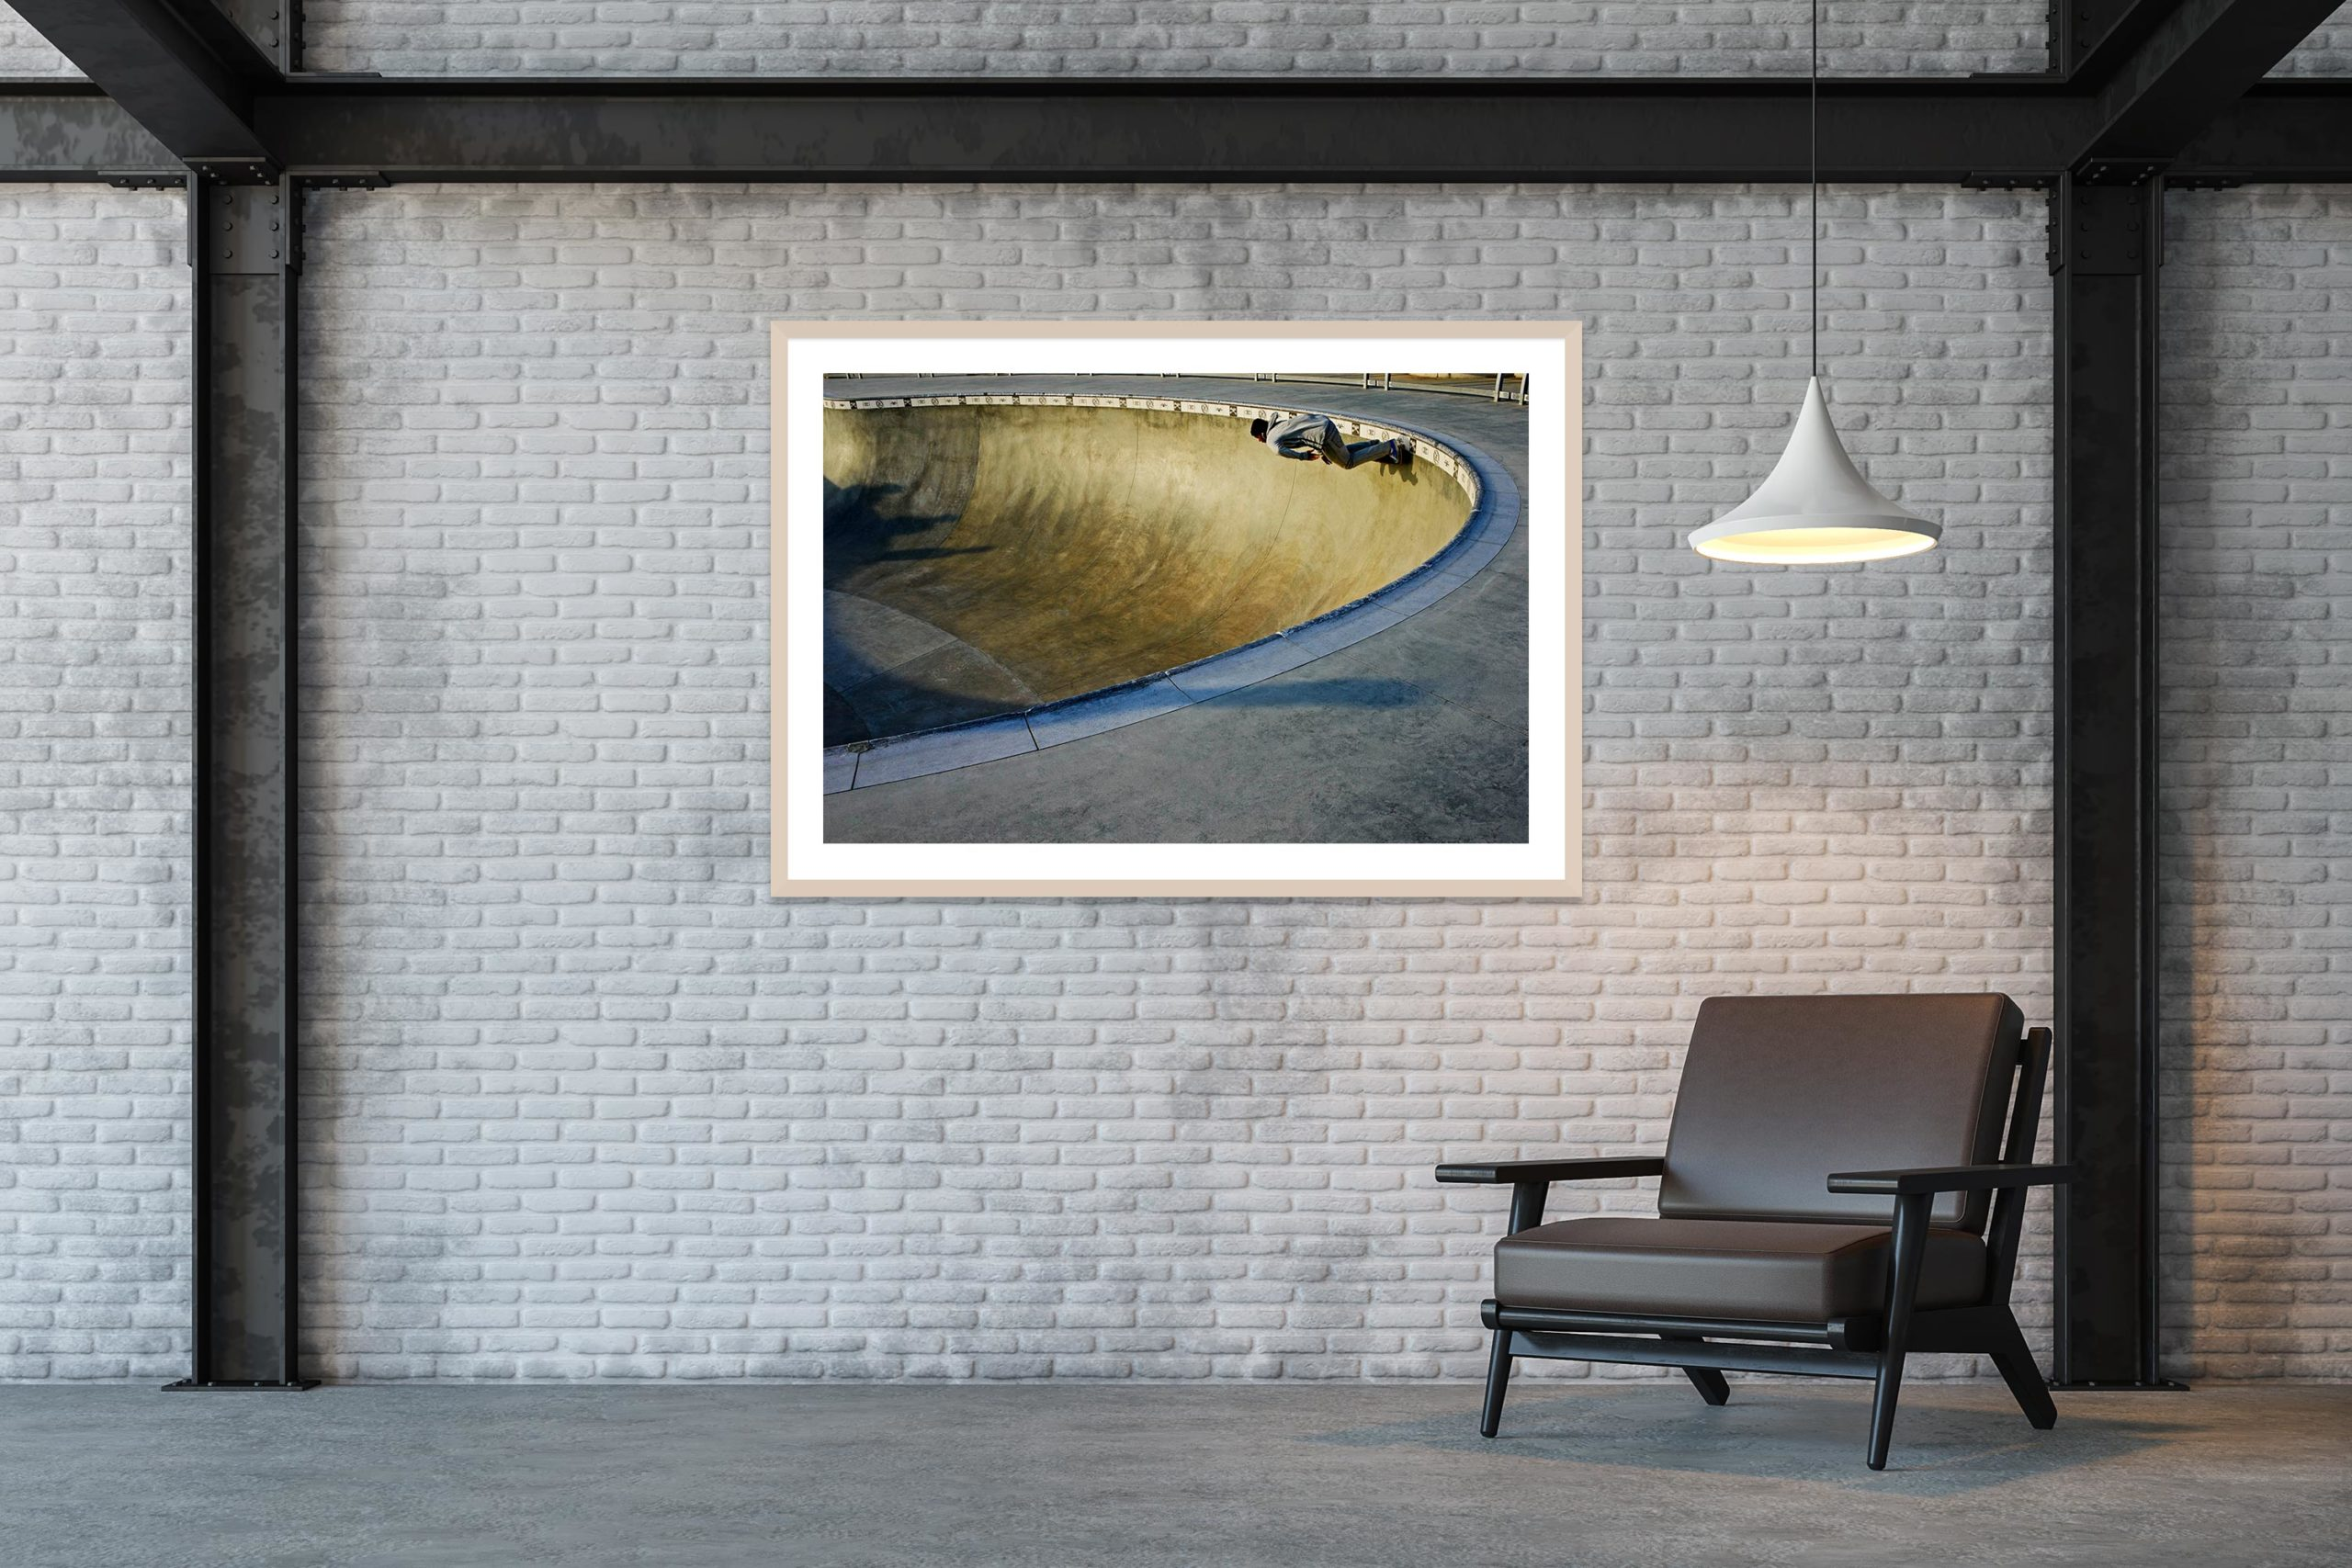 Blue Dream - Timber Frame - Skate Park, Venice Beach Collection - Fine Art Photography by Toby Dixon